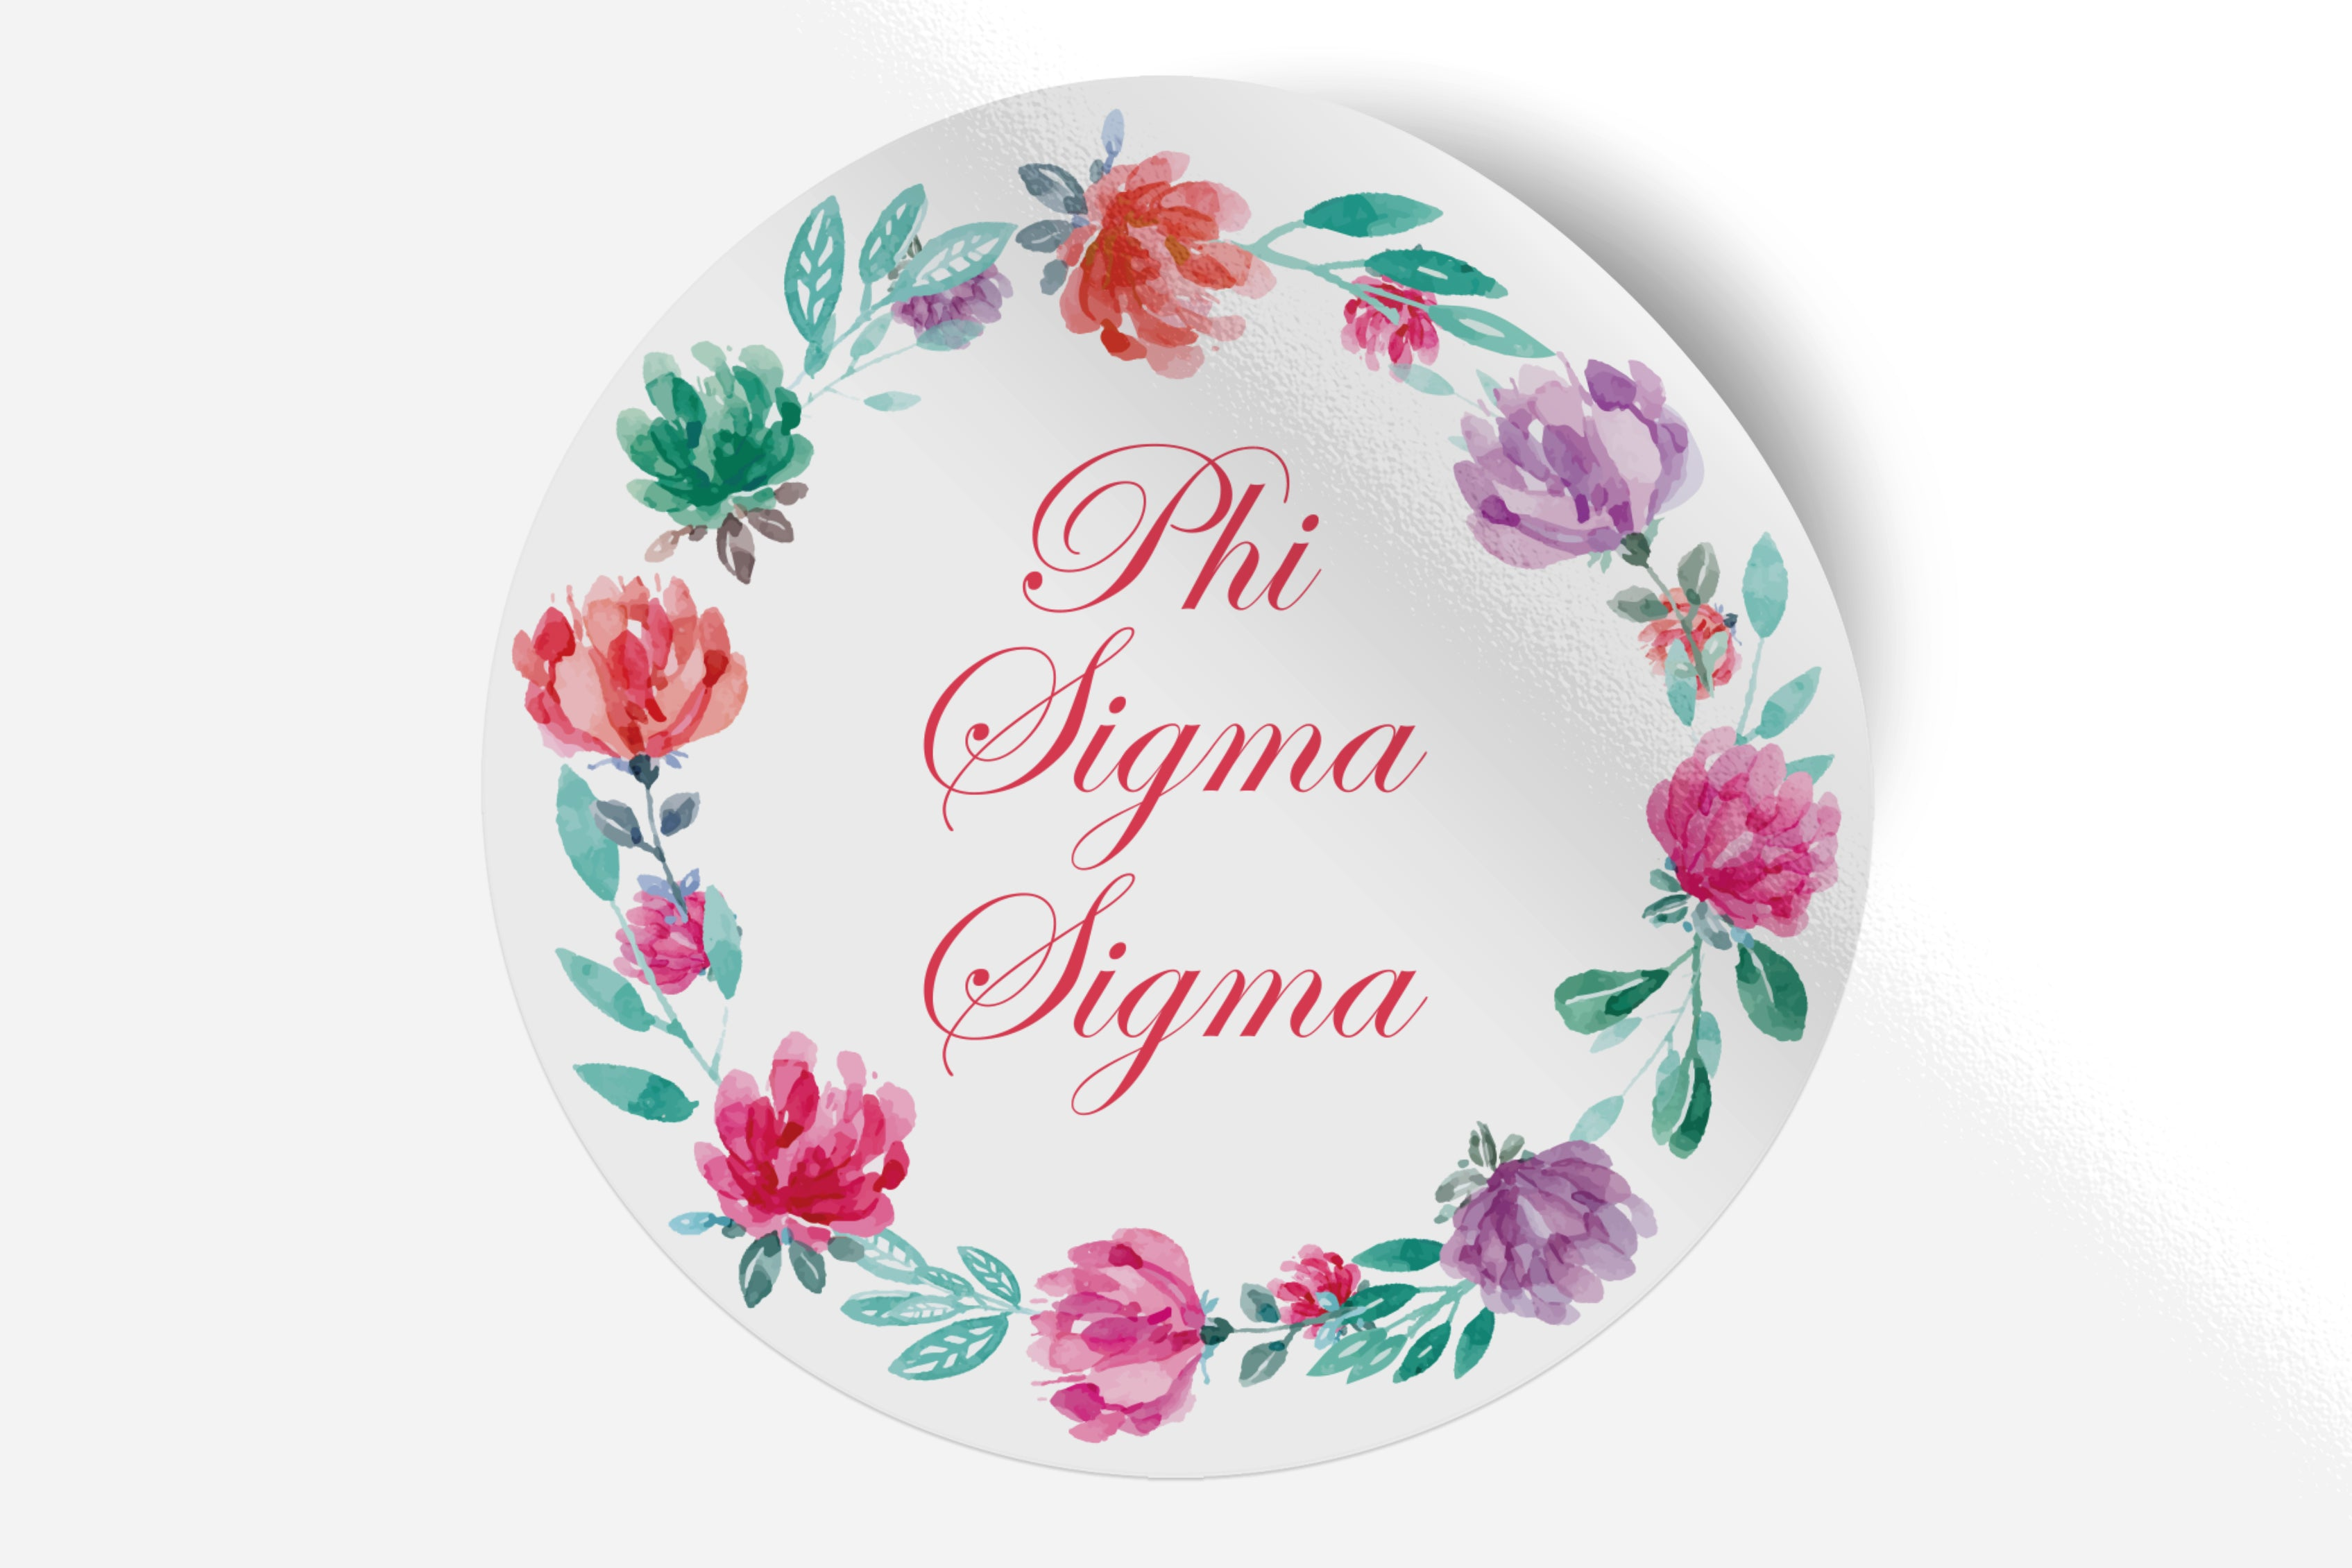 "Phi Sigma Sigma - Watercolor Floral - 5"" Round Sticker"